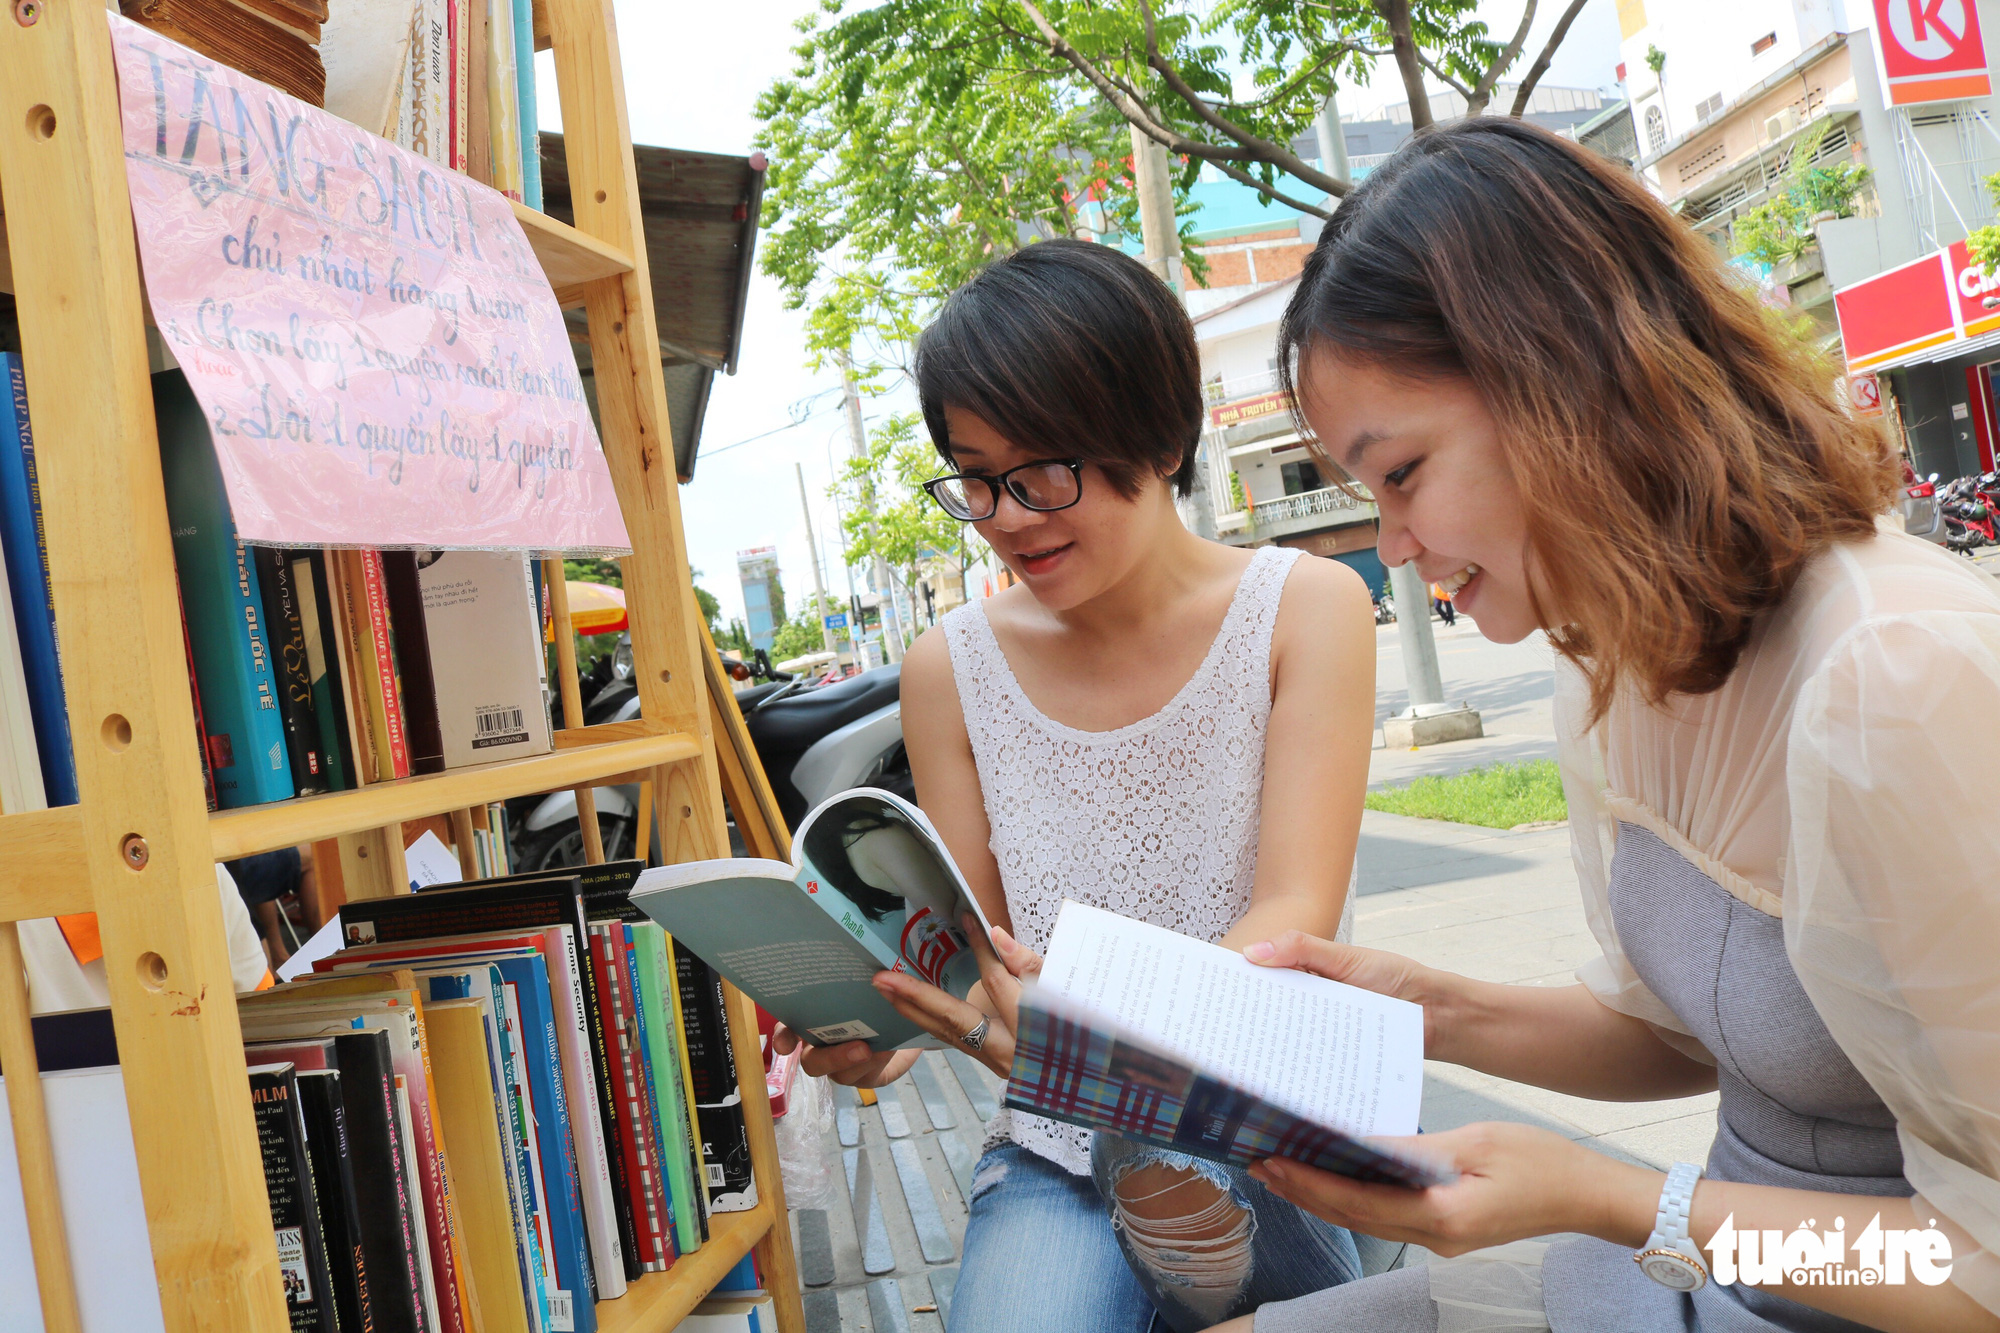 Saigon café allows customers to pay for drinks with books